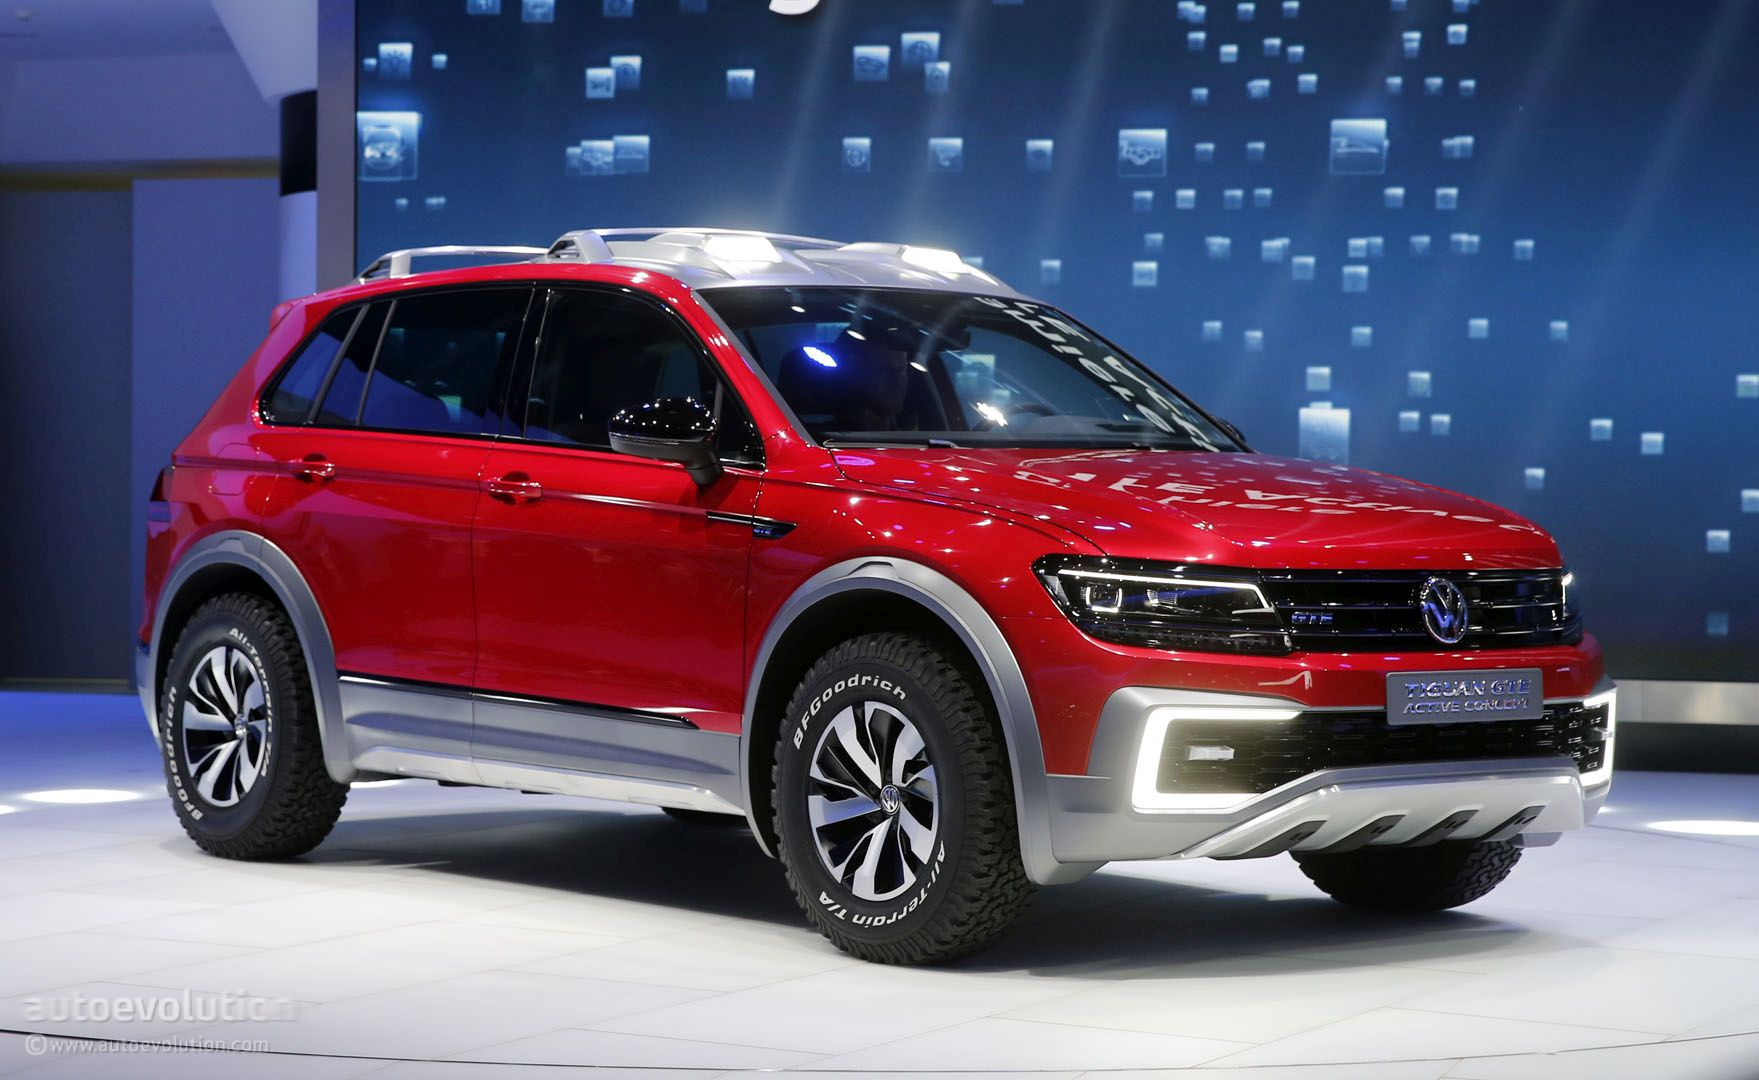 volkswagen tiguan gte active concept is a rwd based sporty. Black Bedroom Furniture Sets. Home Design Ideas